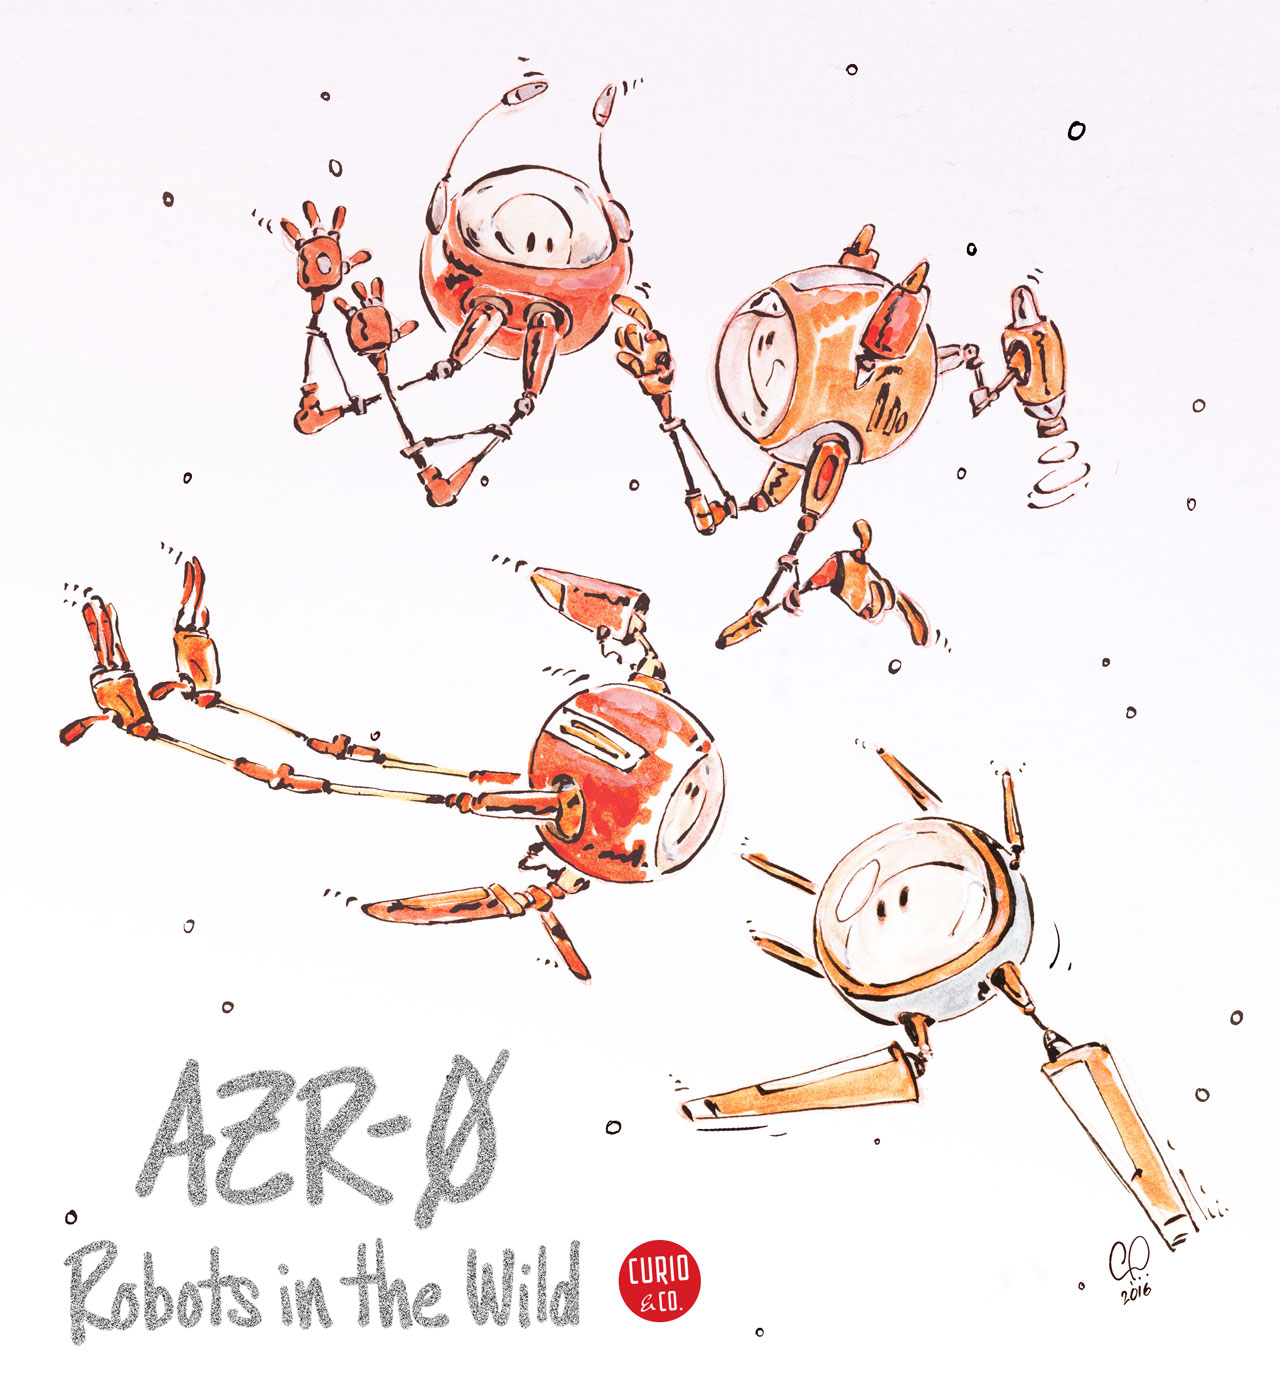 AZR_Splash_Behance_v2_Title_WEB1400